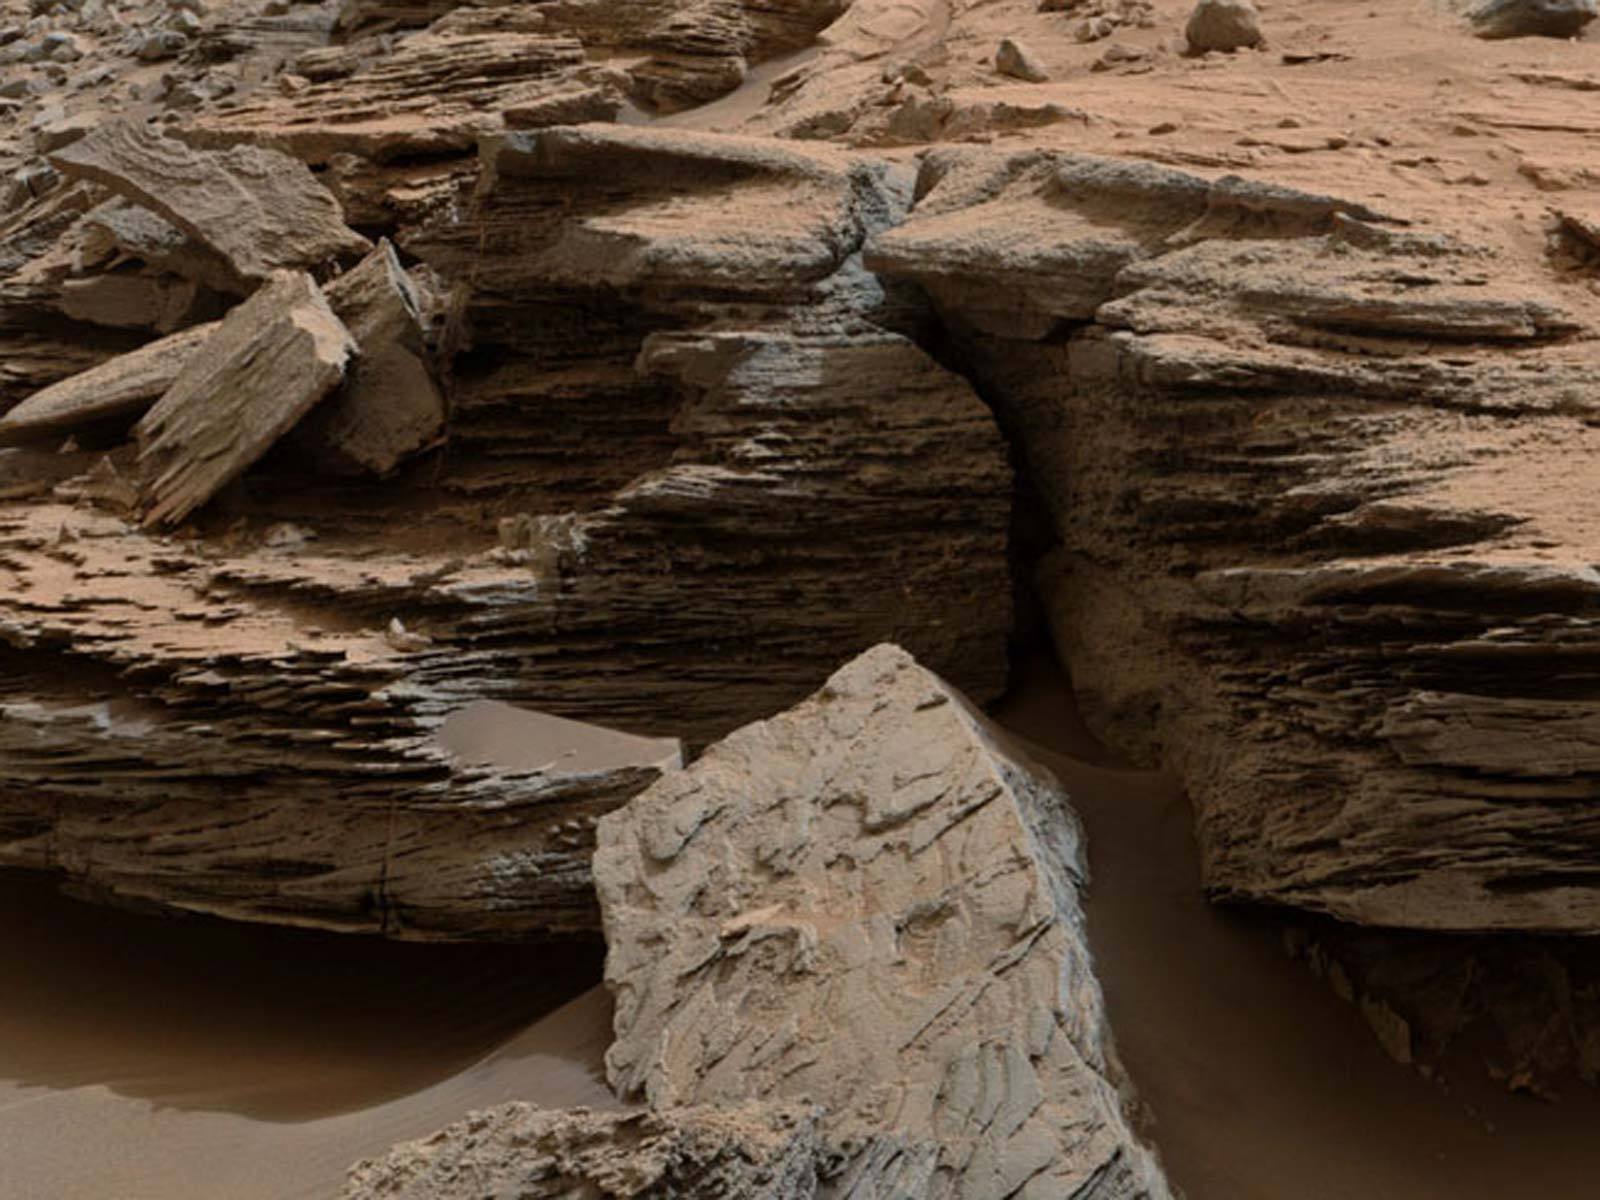 Mars Has Layers | Space Wallpaper